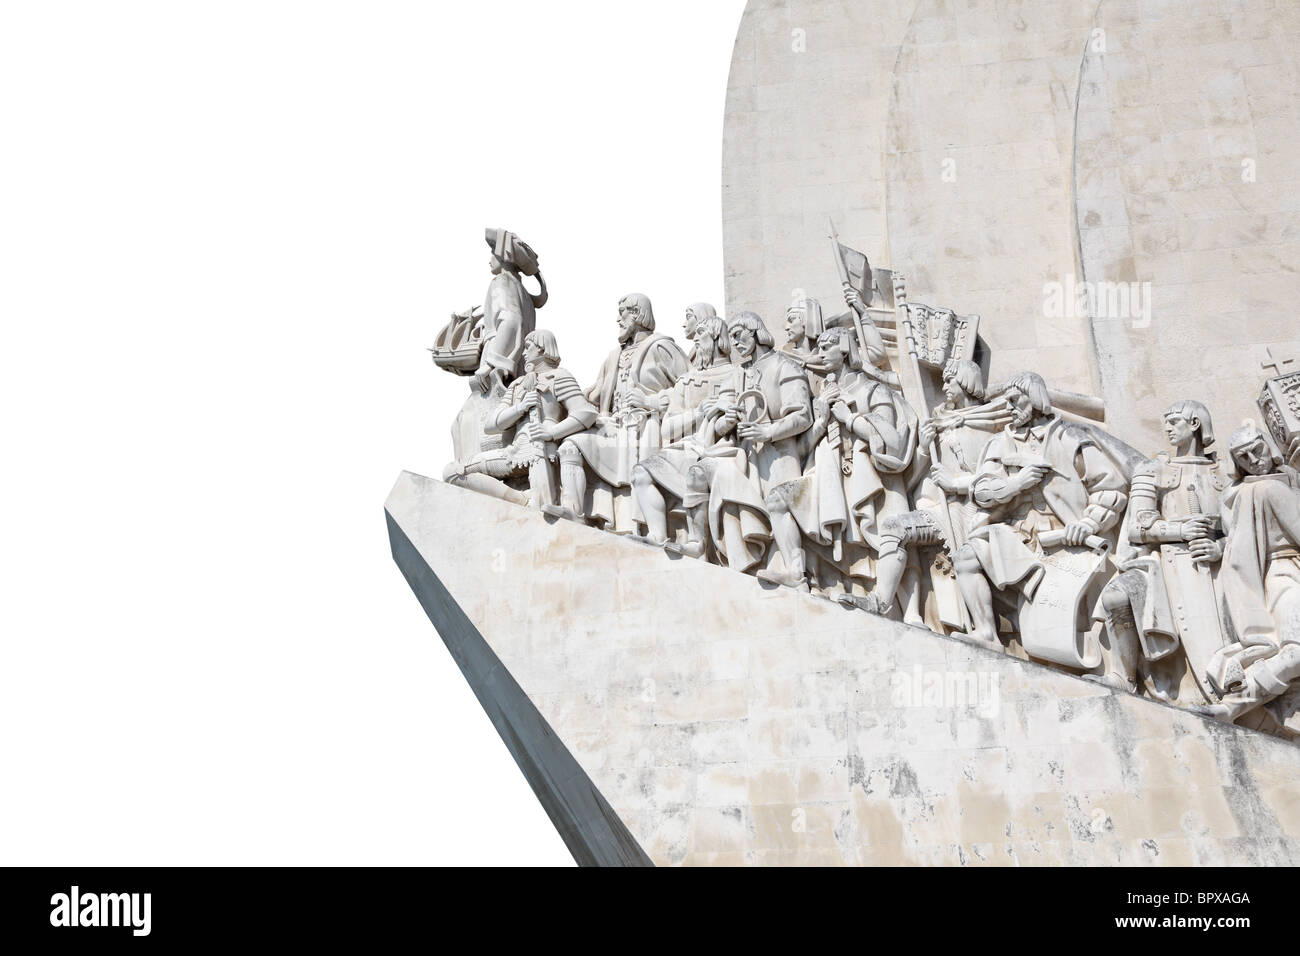 Monument to the Discoveries in Lisbon, Portugal. Isolated over white background - Stock Image